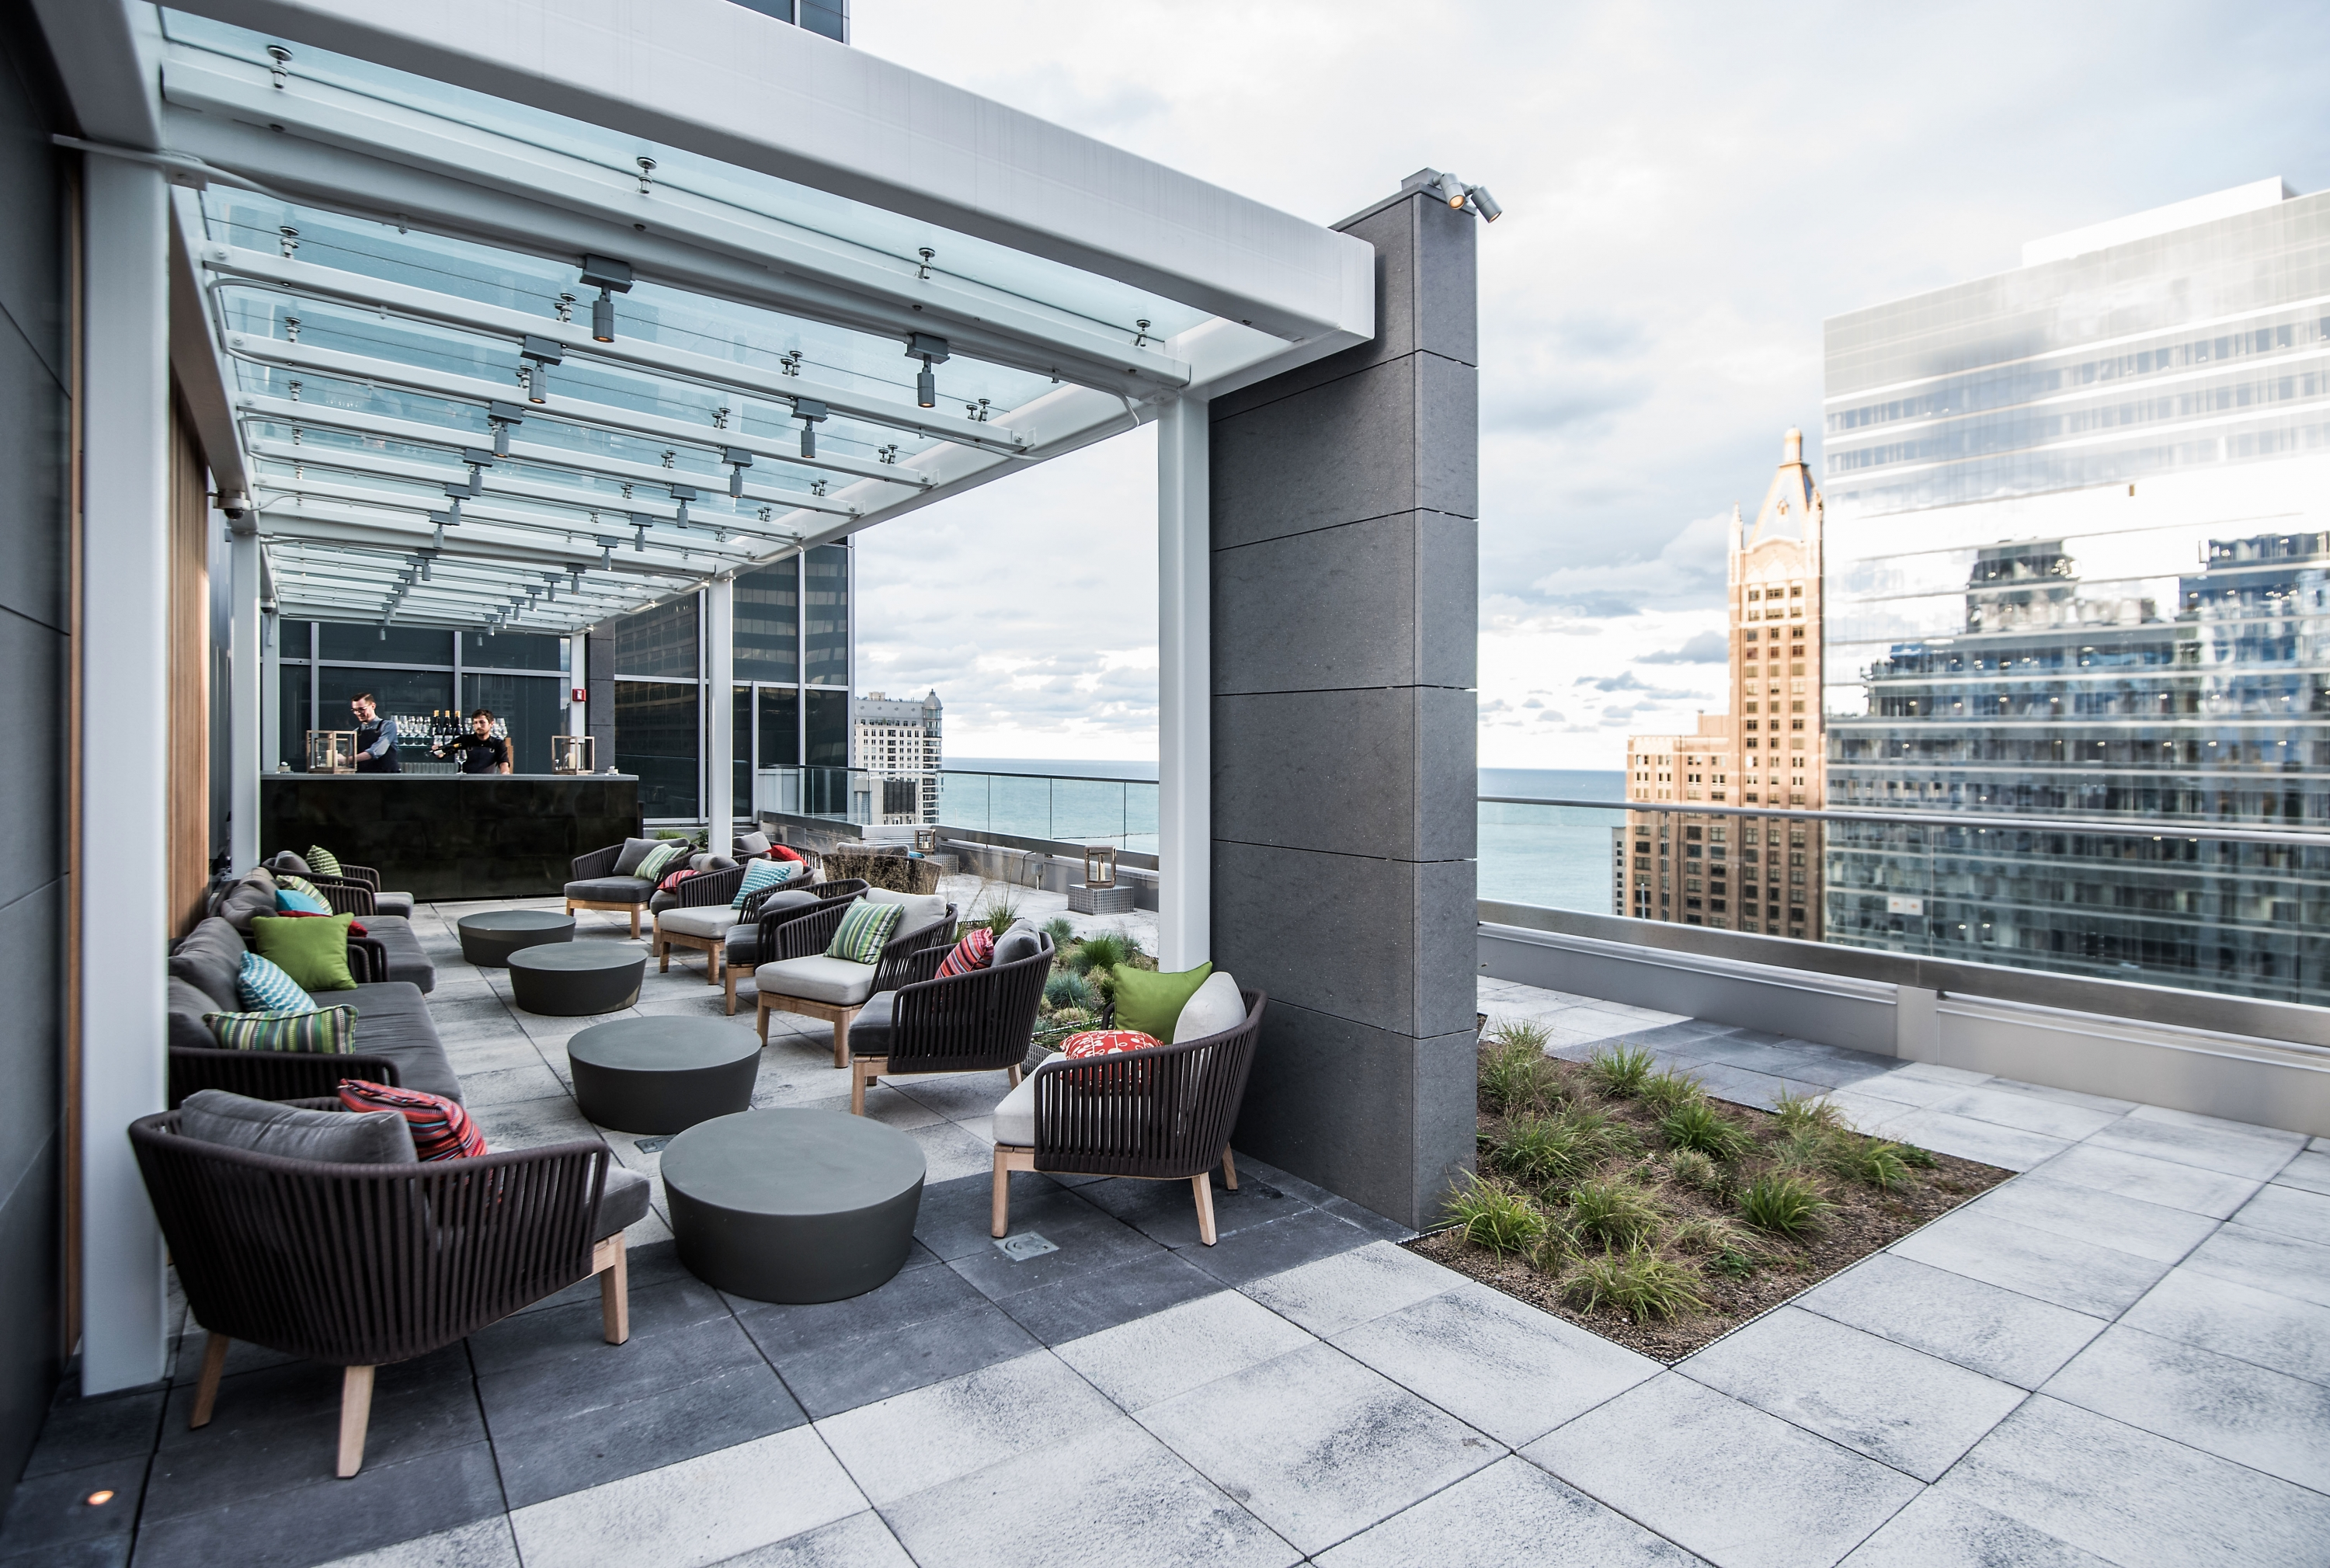 11 outdoor dining and drinking spots in downtown Chicago for the ...